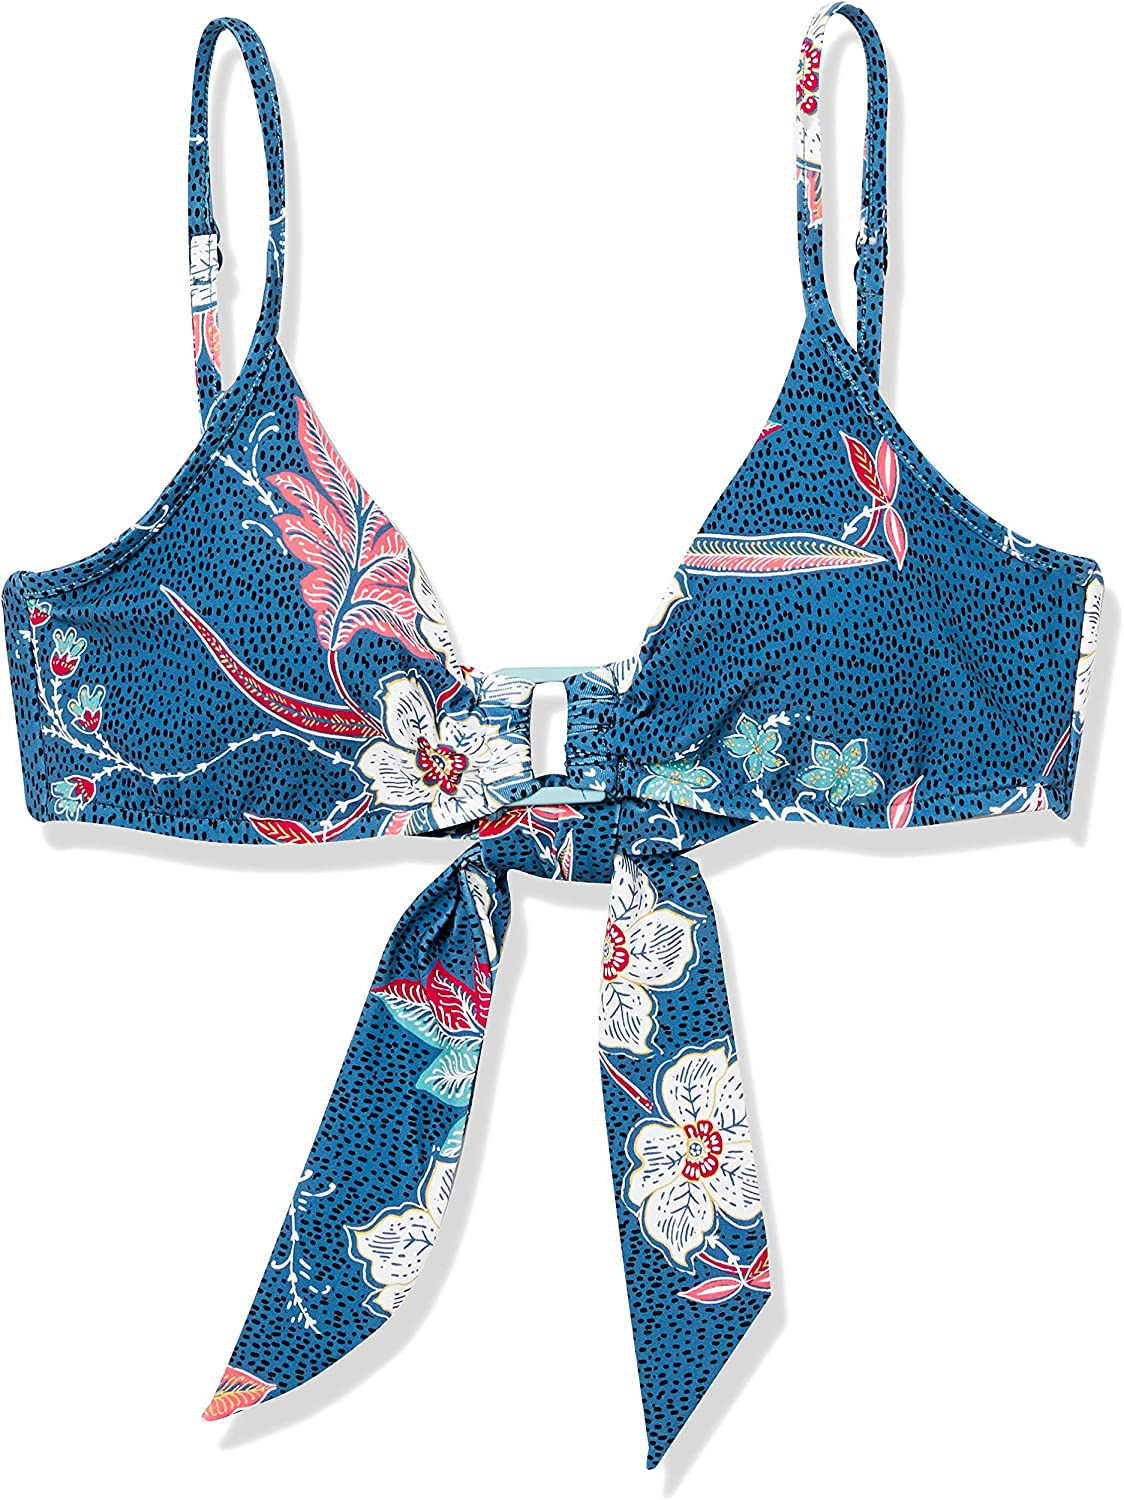 Seafolly Some reservation Women's Ring Front Bralette Top Bikini Swimsuit Louisville-Jefferson County Mall